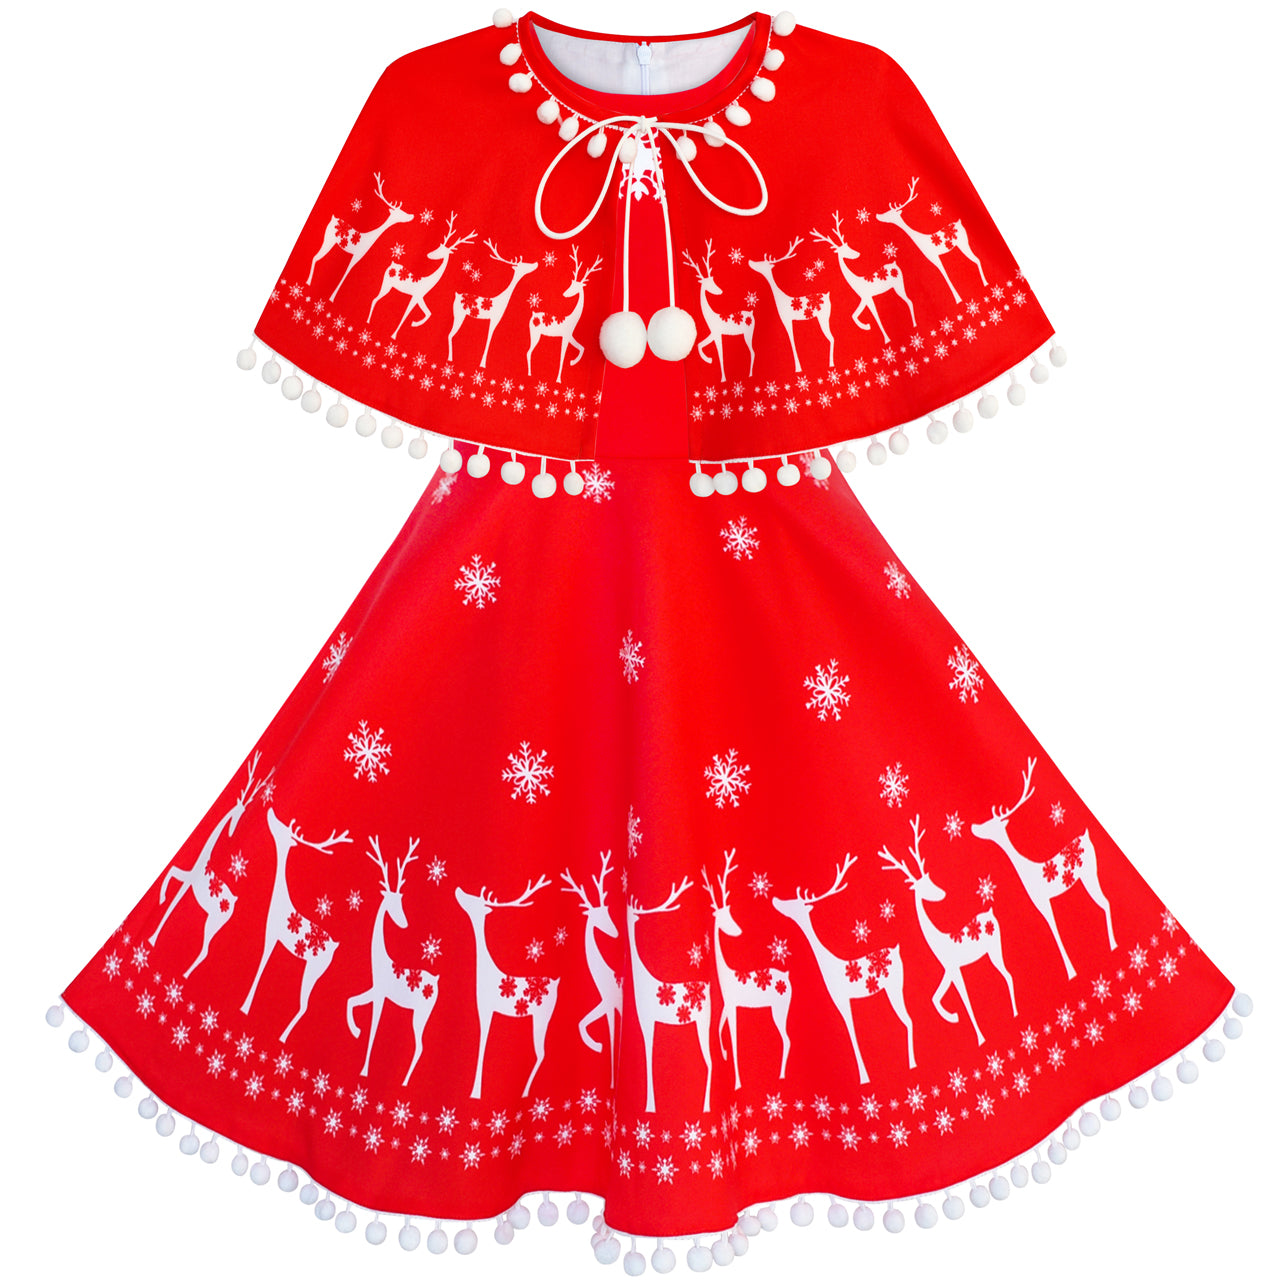 Sunny Fashion Girls Dress Long Sleeve Christmas Snowman Holiday Party Age 5-12 Years